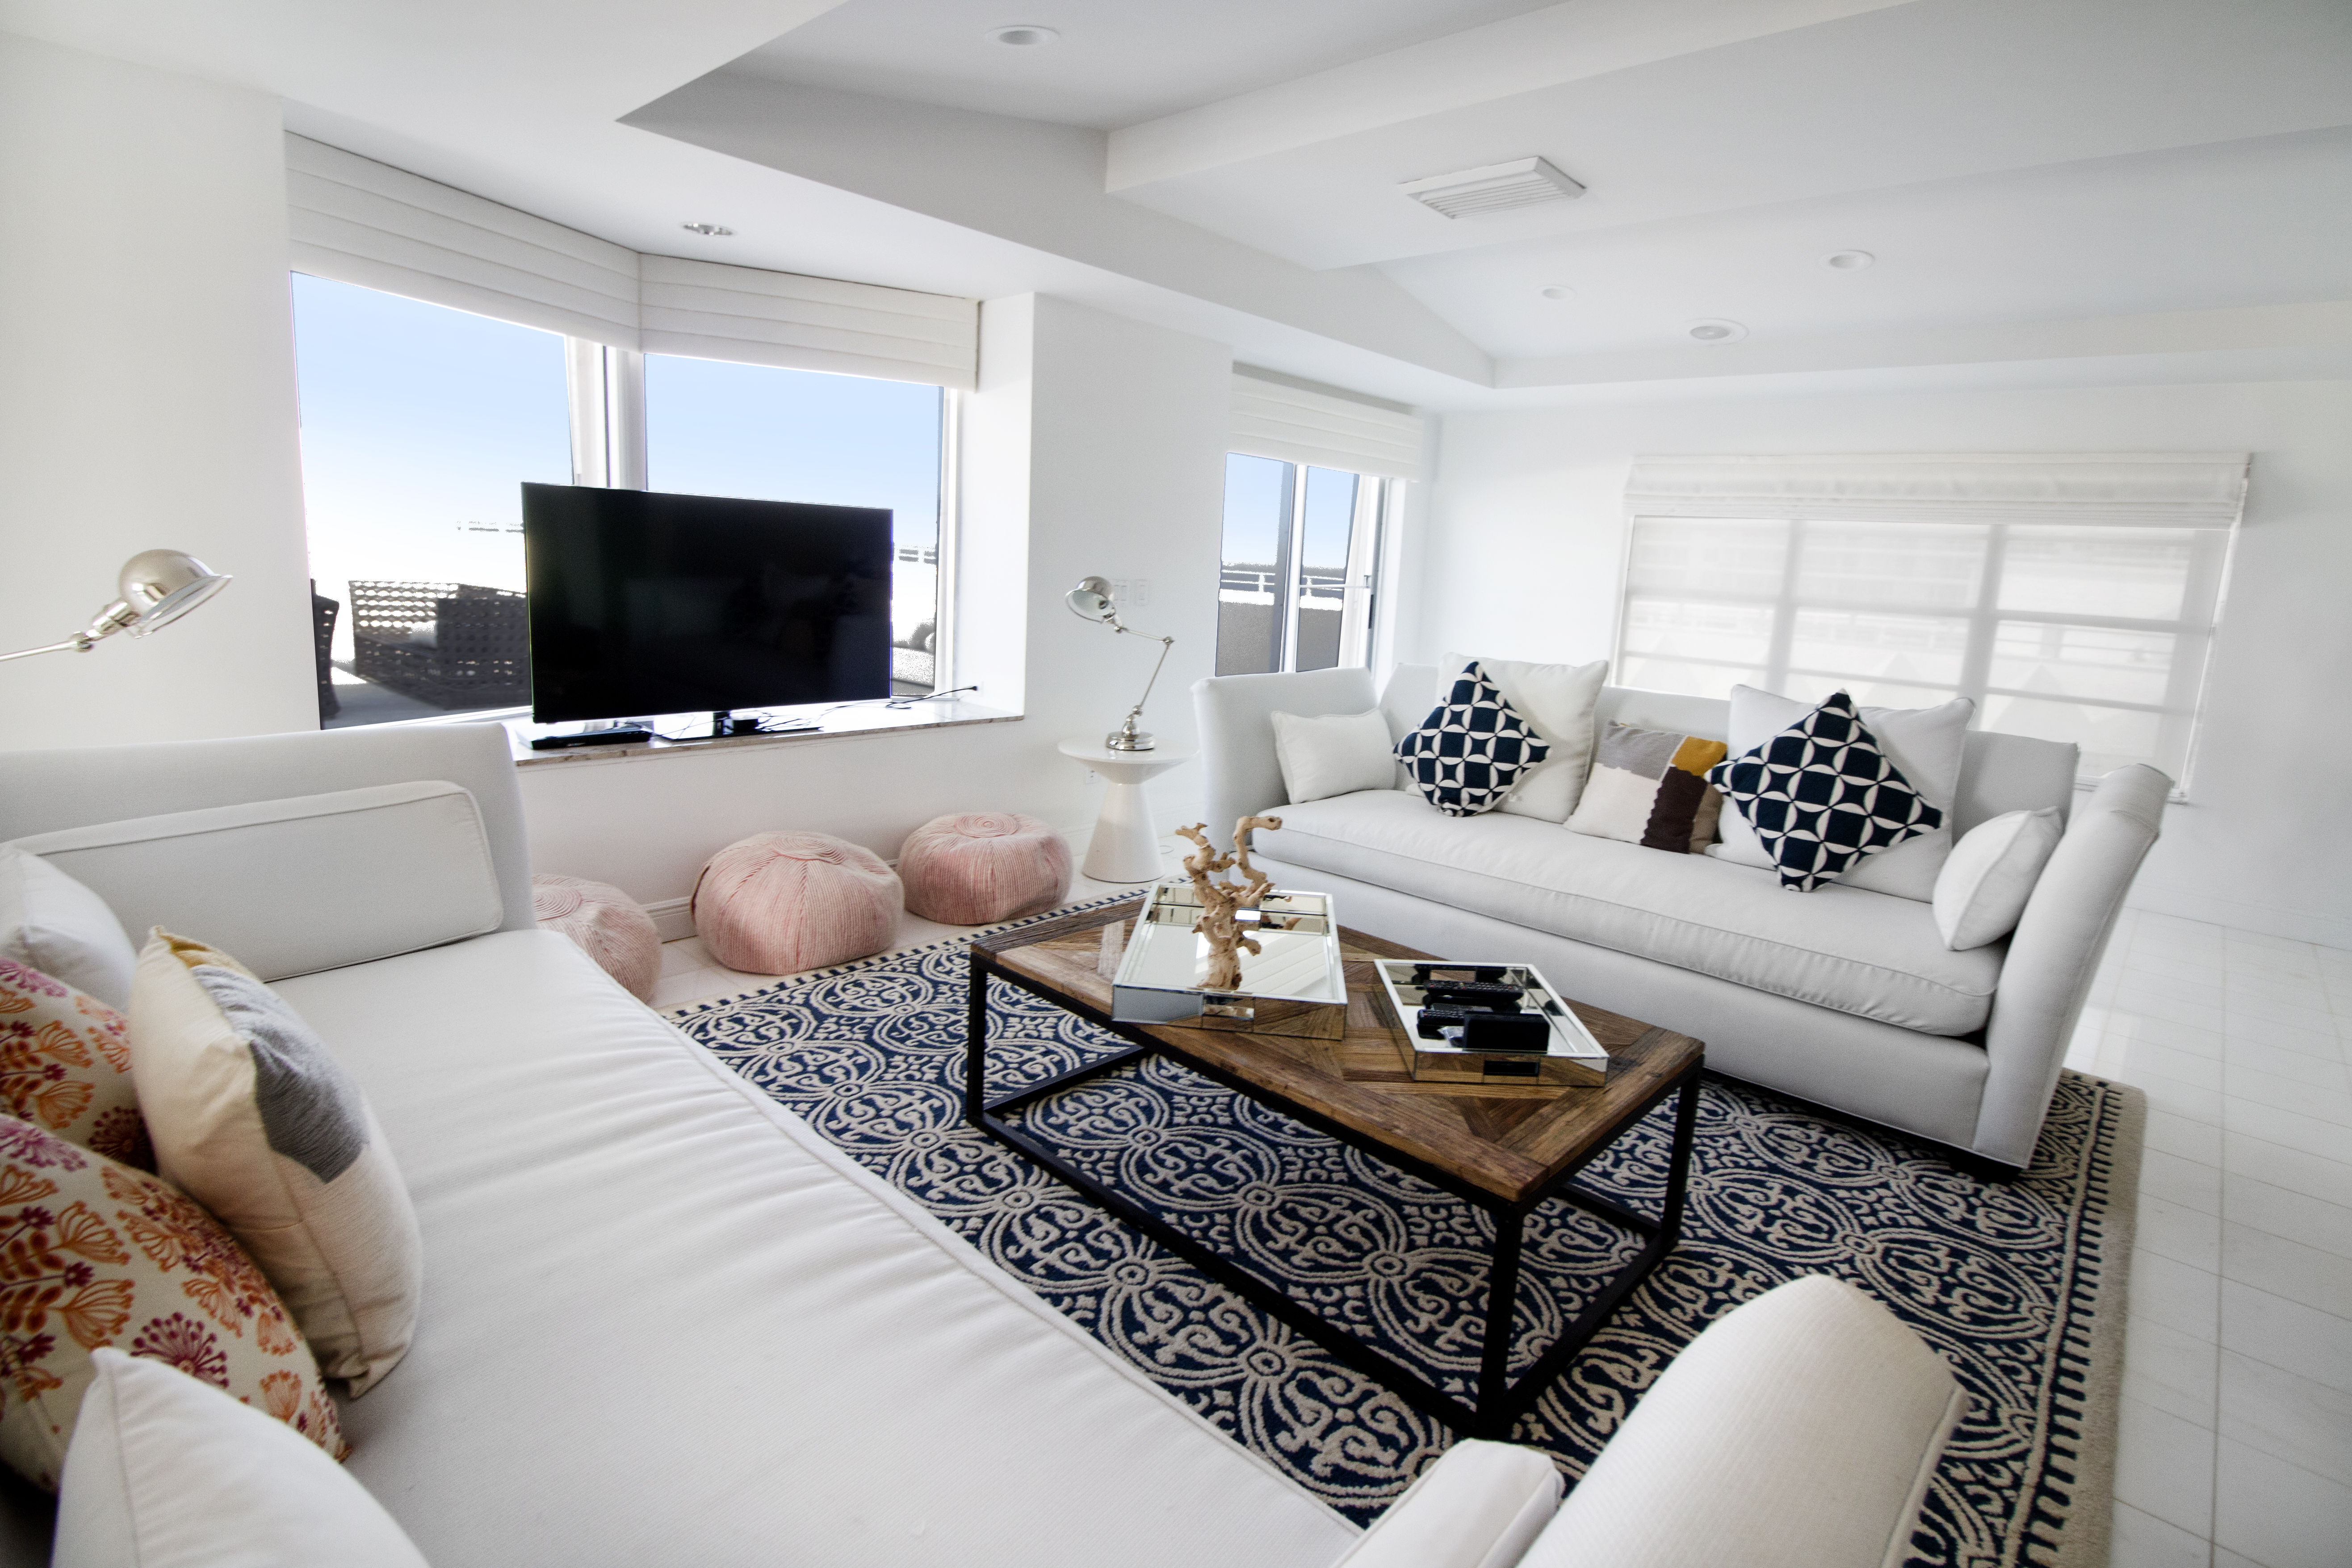 Living room of the Penthouse at Seacoast Suites